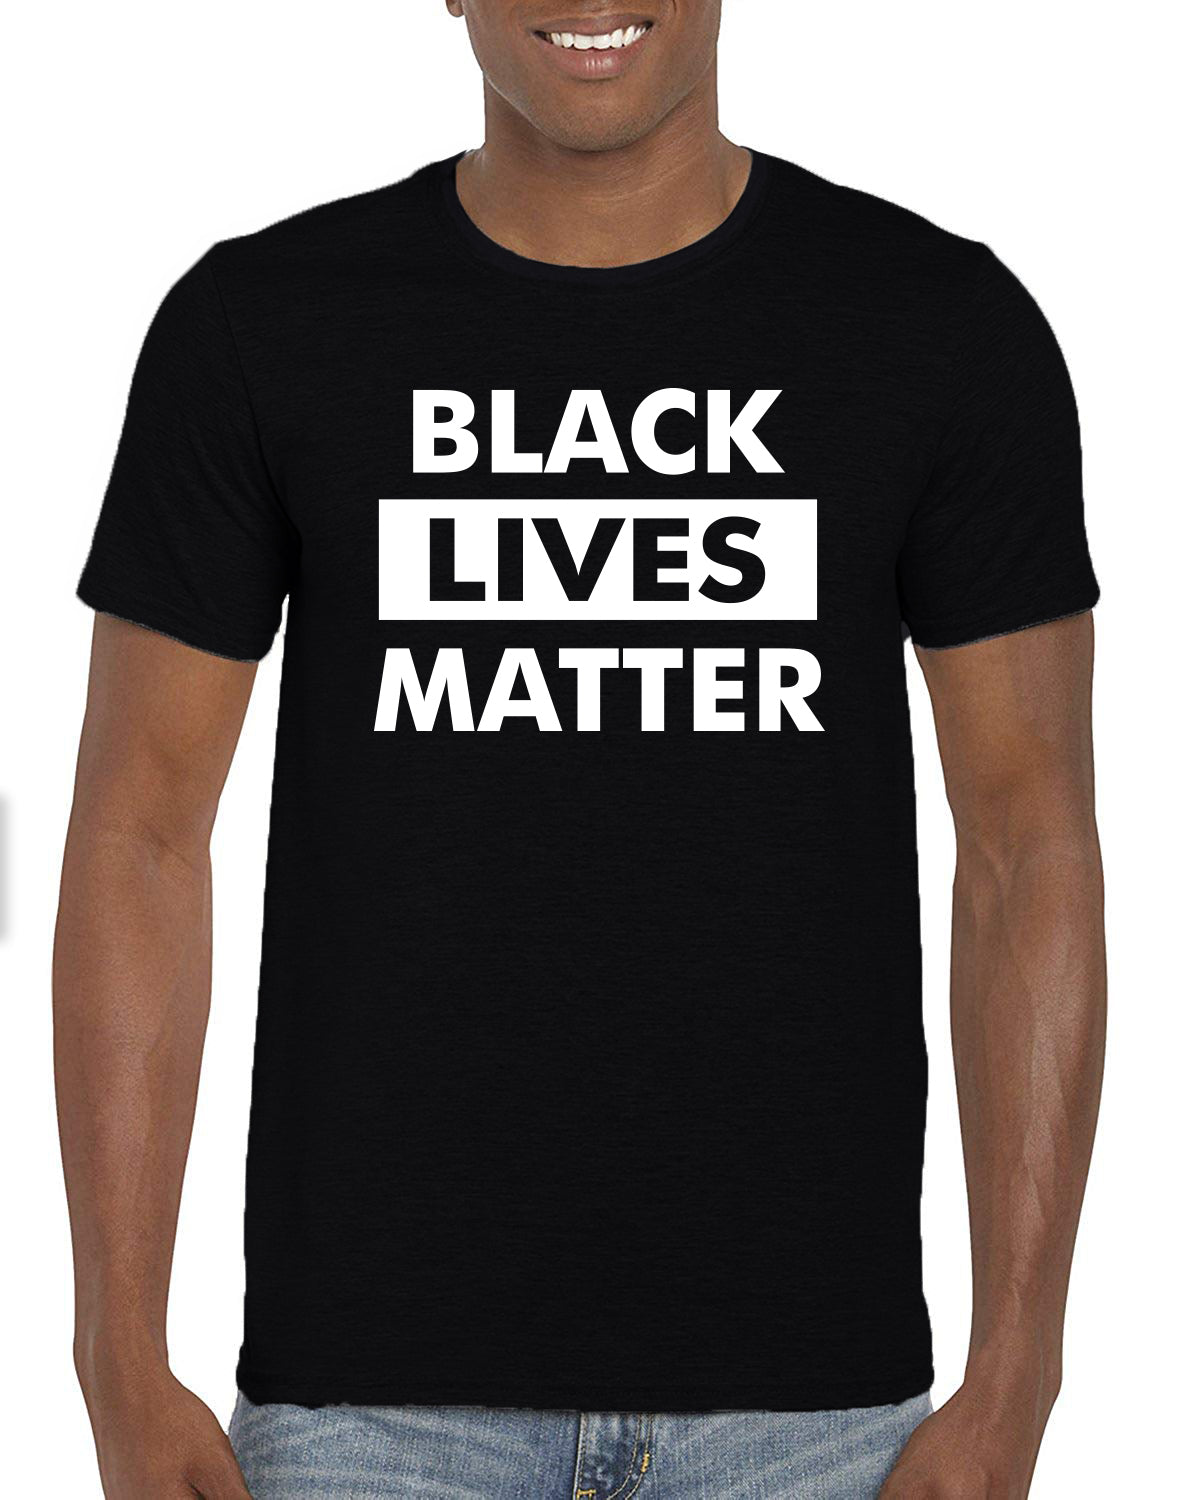 Social Justice Shirts – Signs Of Justice